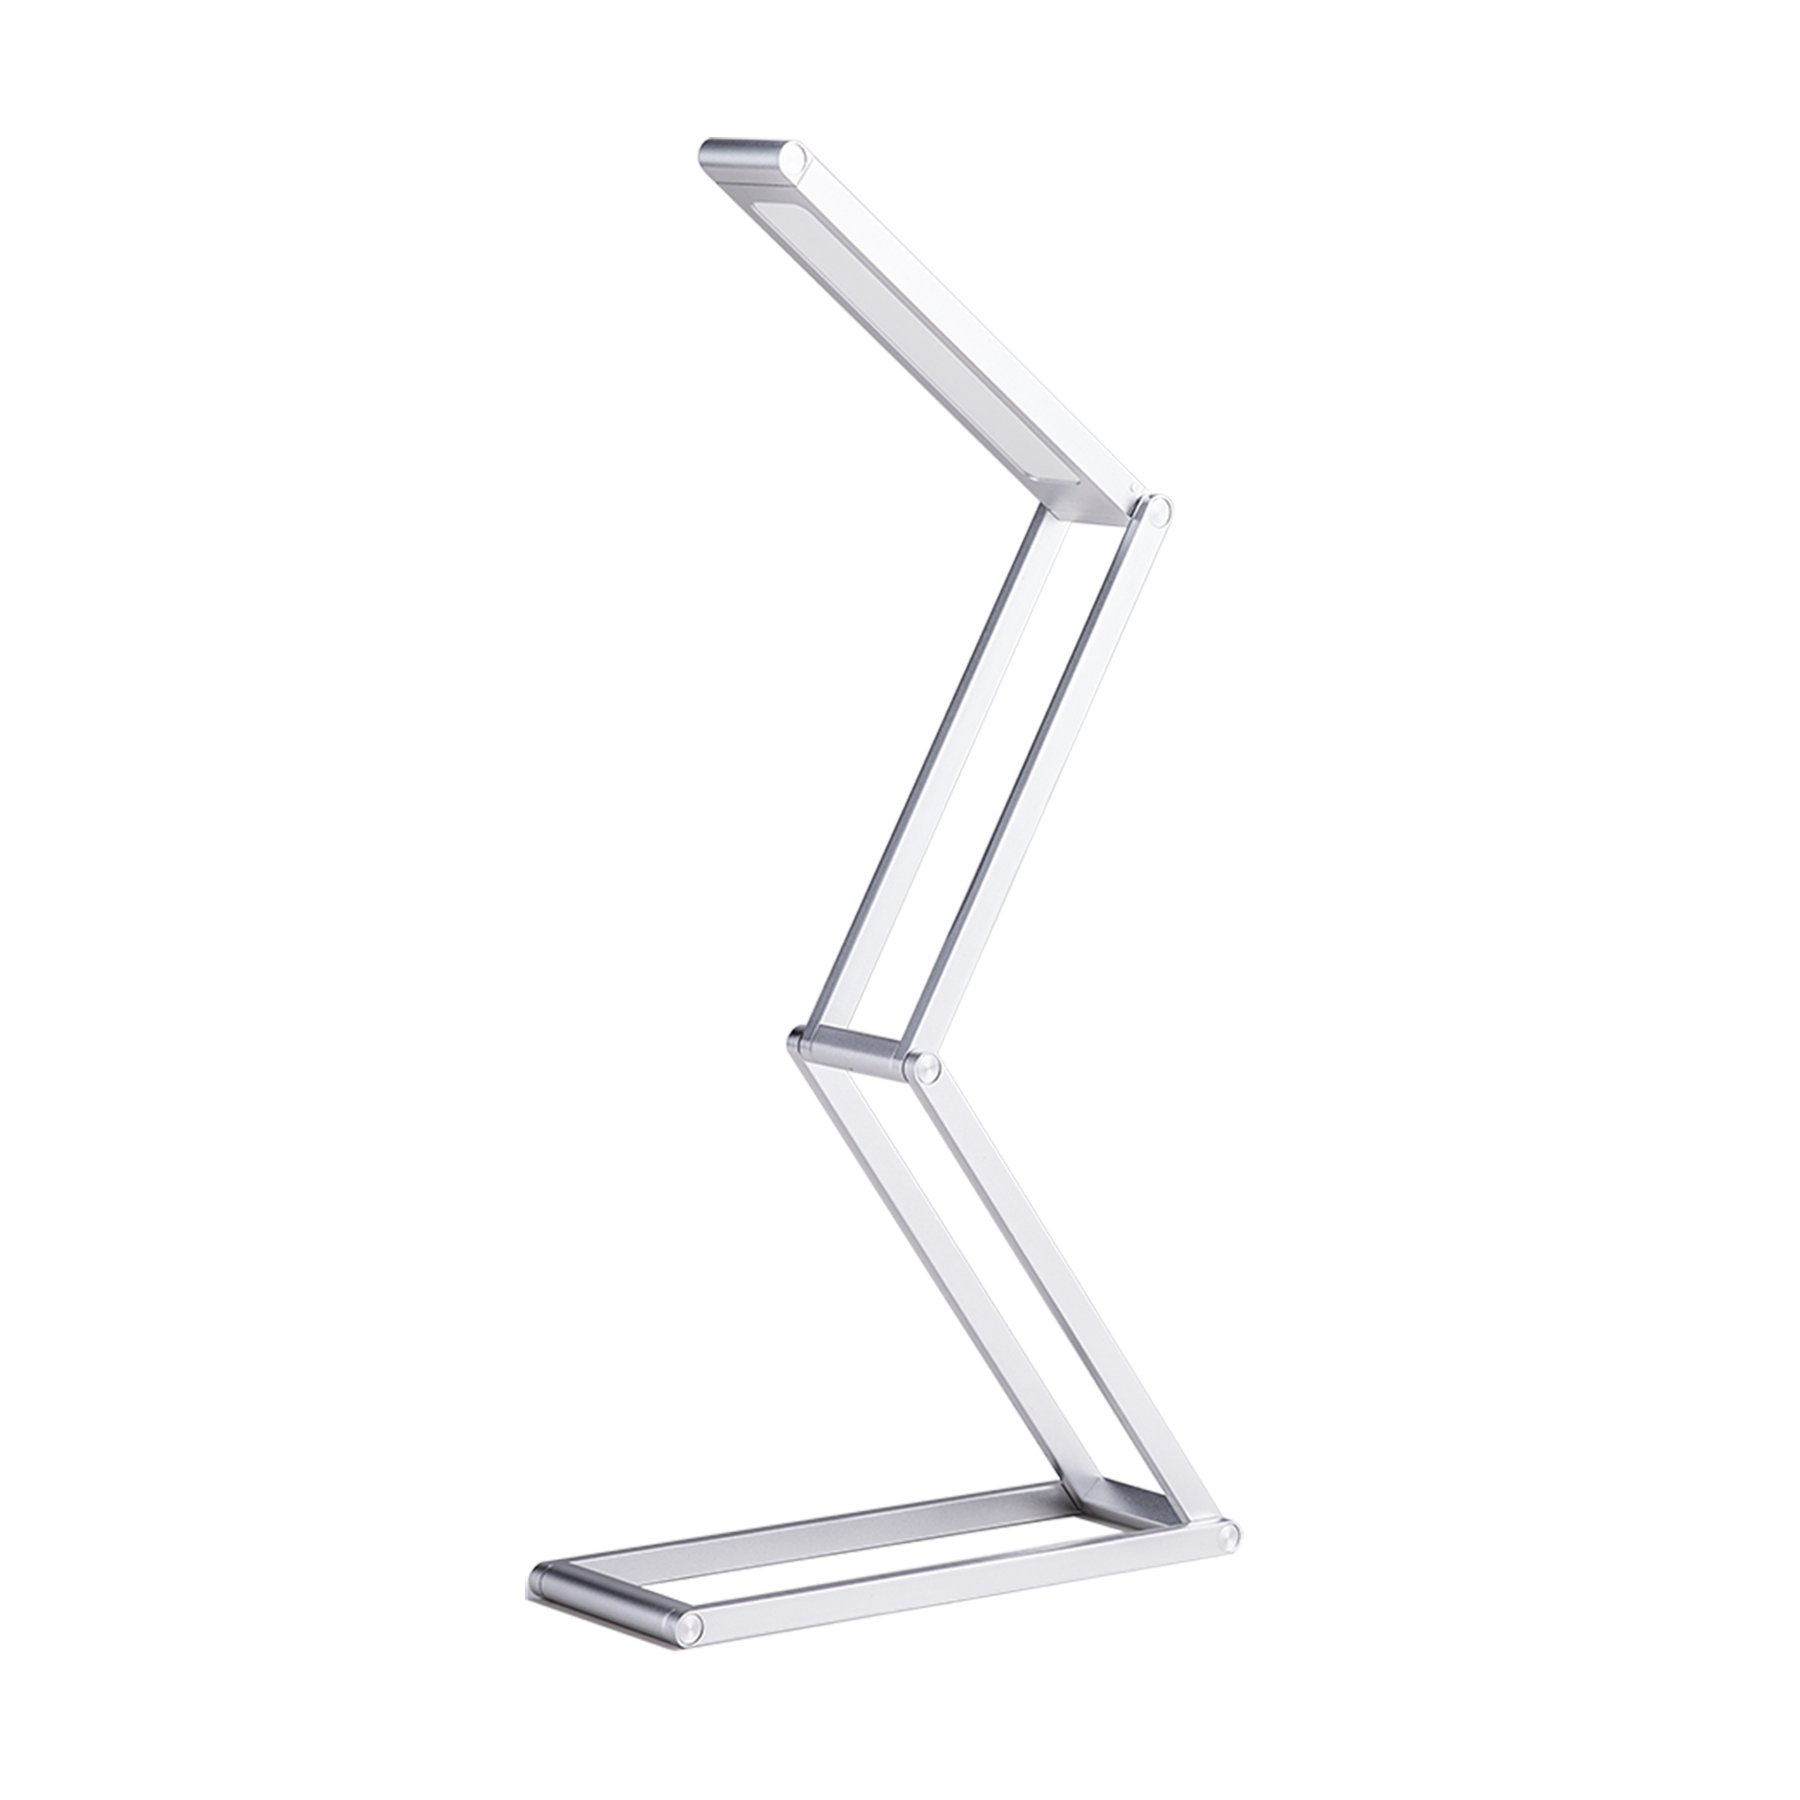 CO-Z 3 Brightness Levels LED Dimmable Desk Reading Lamp, Portable Folding USB Aluminum Alloy Table Lamp (Silver) for Bedroom Office Camping Traveling or Birthday Present/Gift